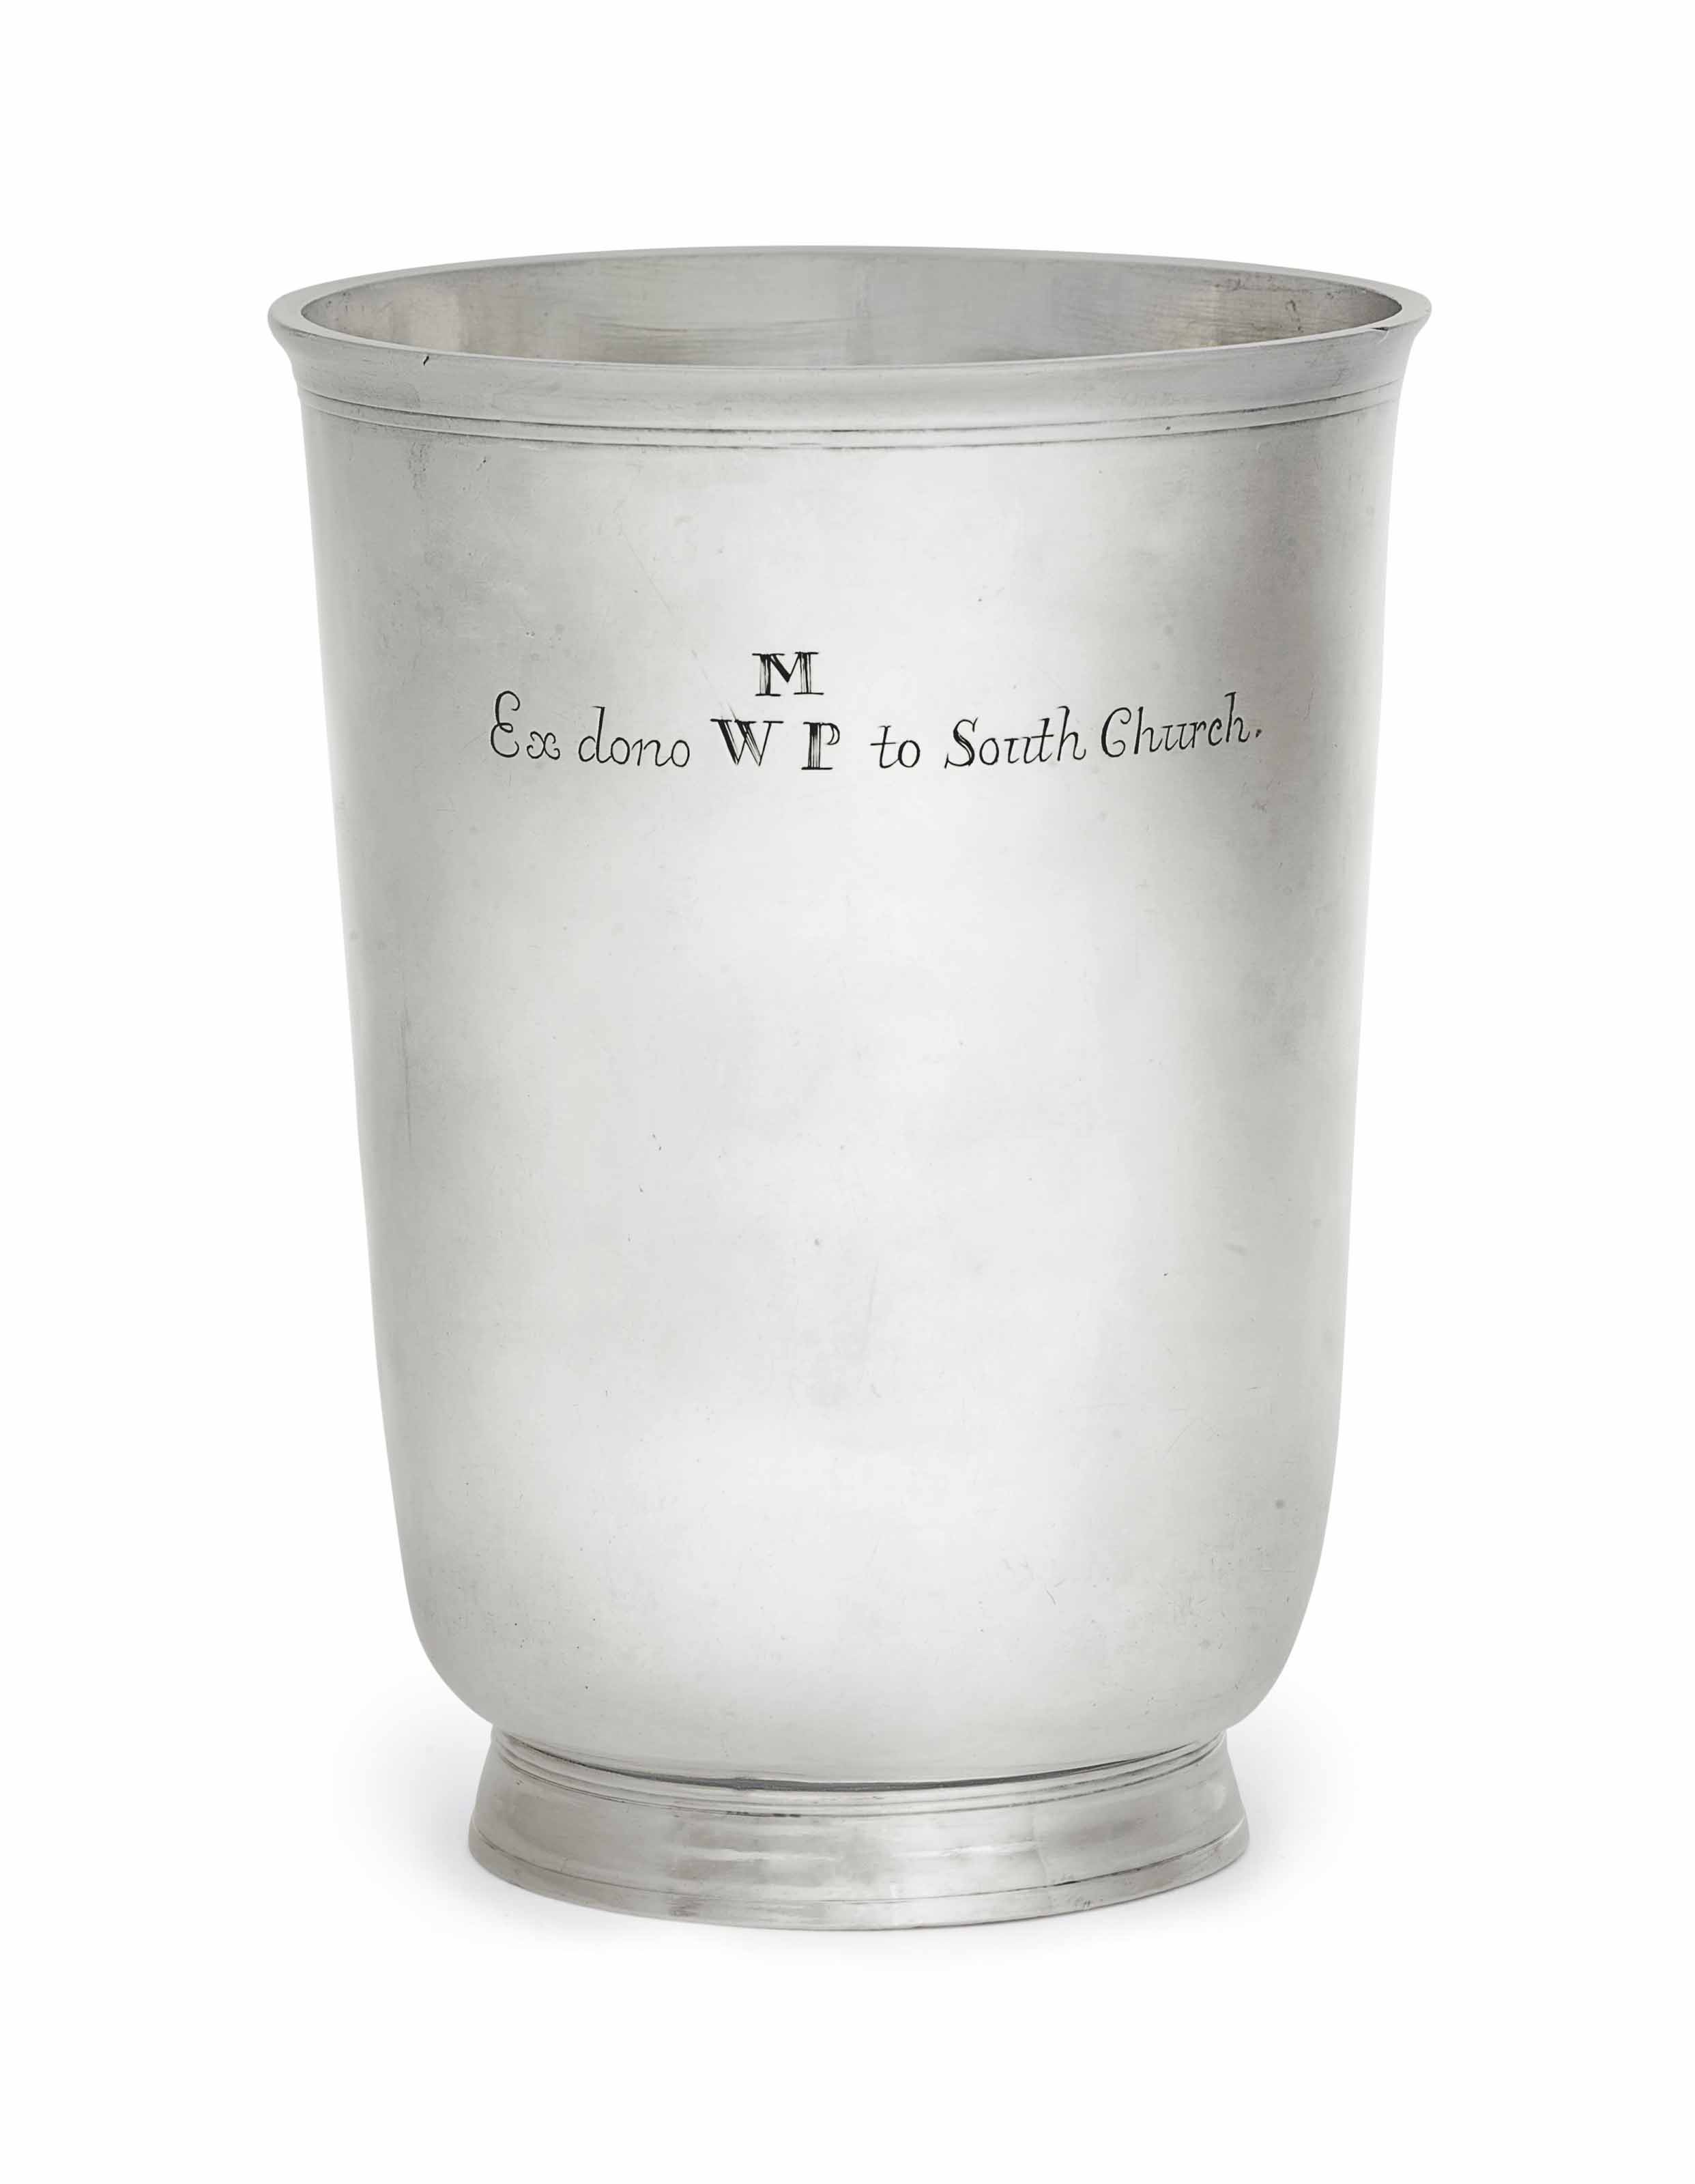 THE WILLIAM MANLEY SILVER BEAKER